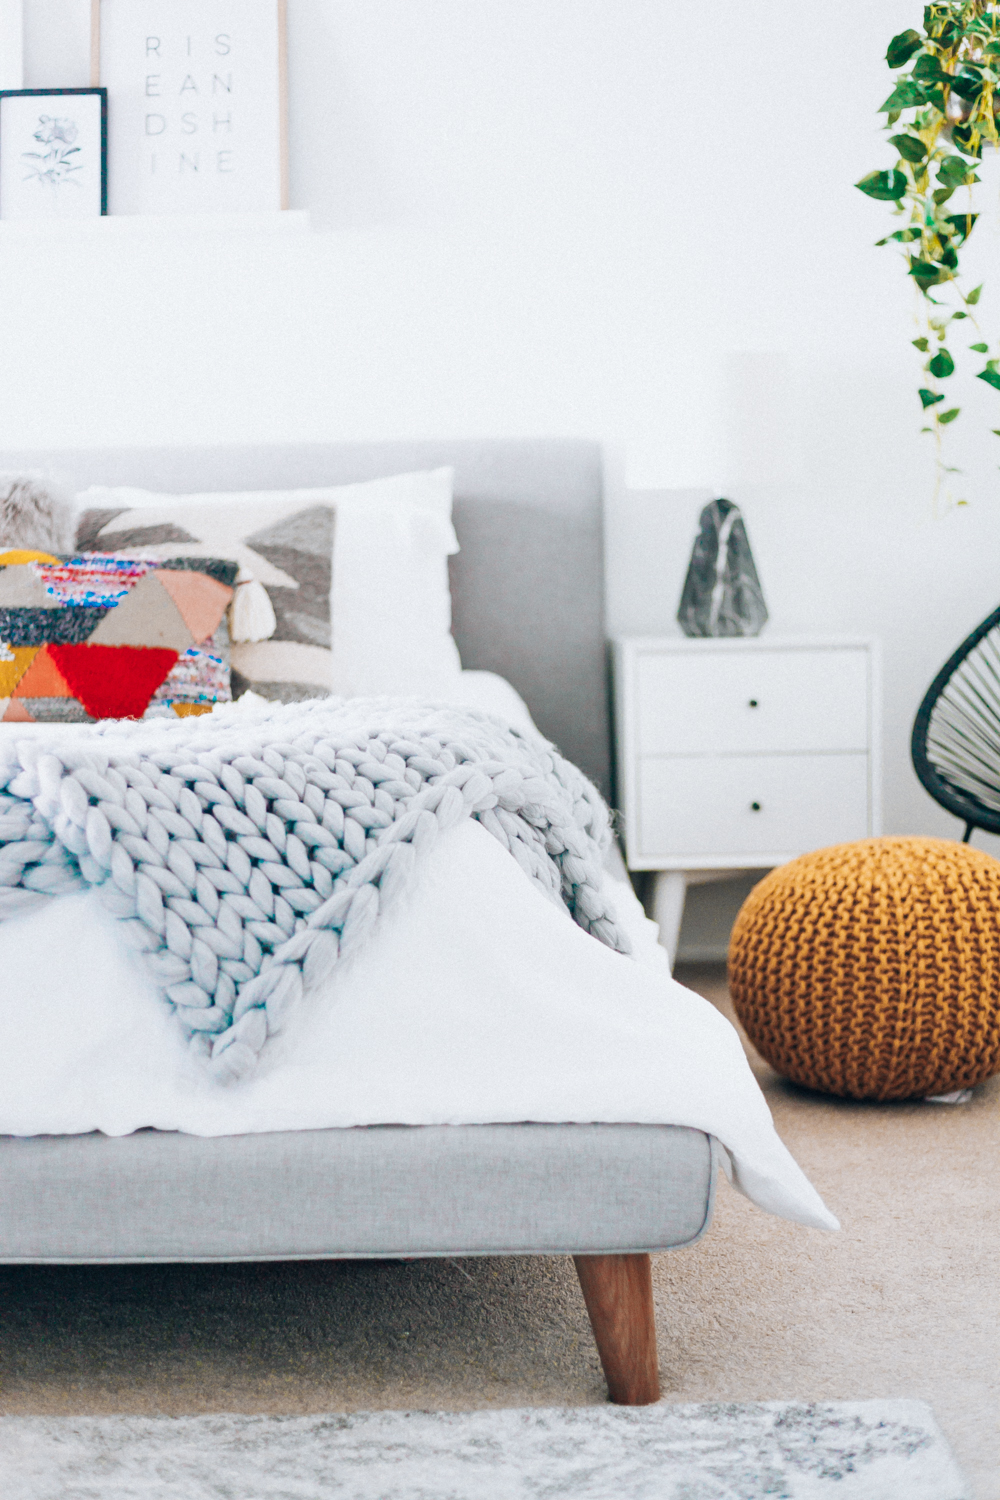 Our New Bedroom Furniture with Feather | The Girl in the ...